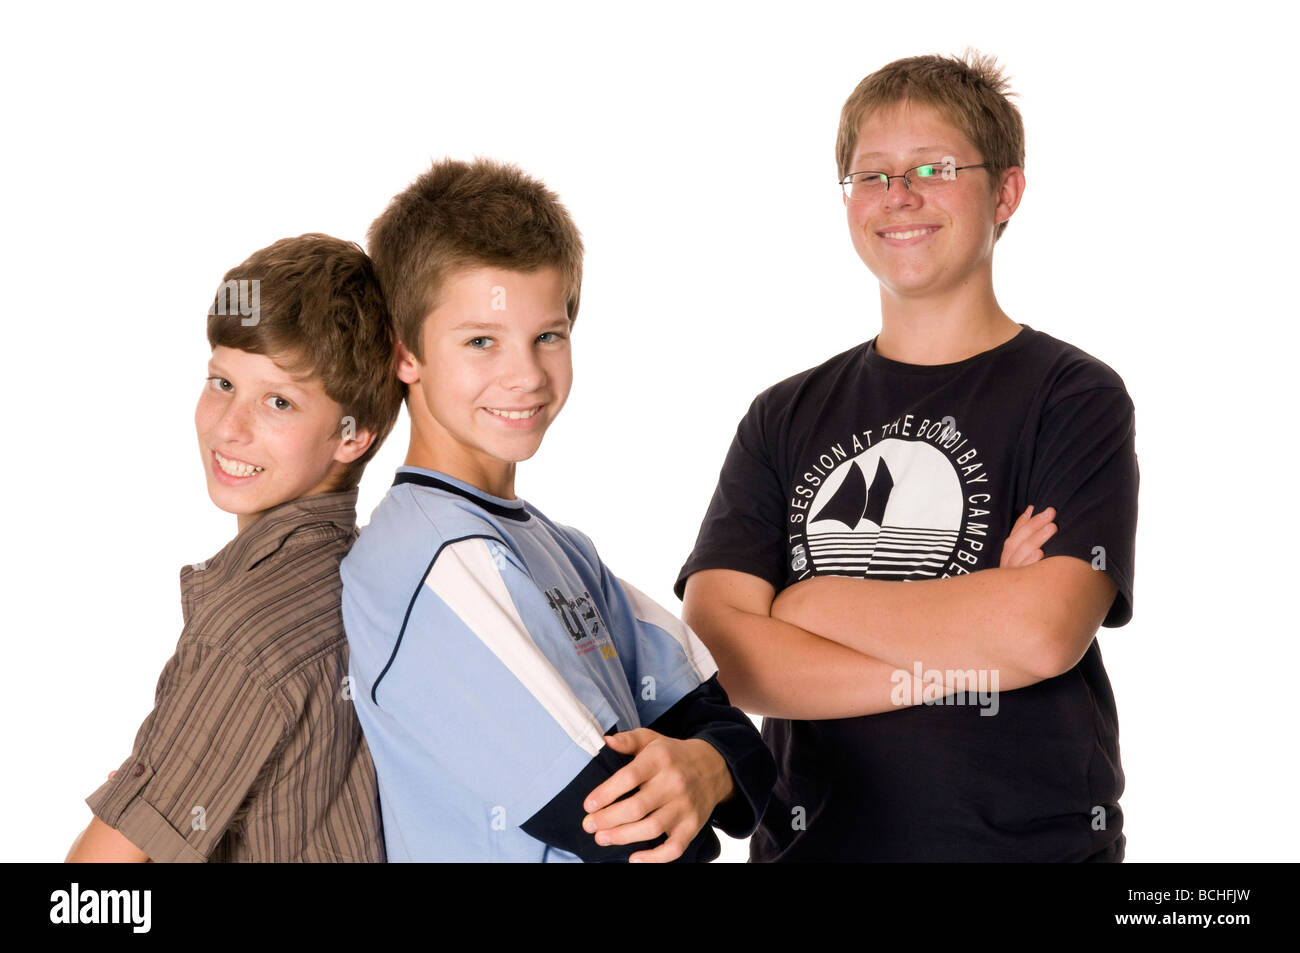 Three young boys - Stock Image